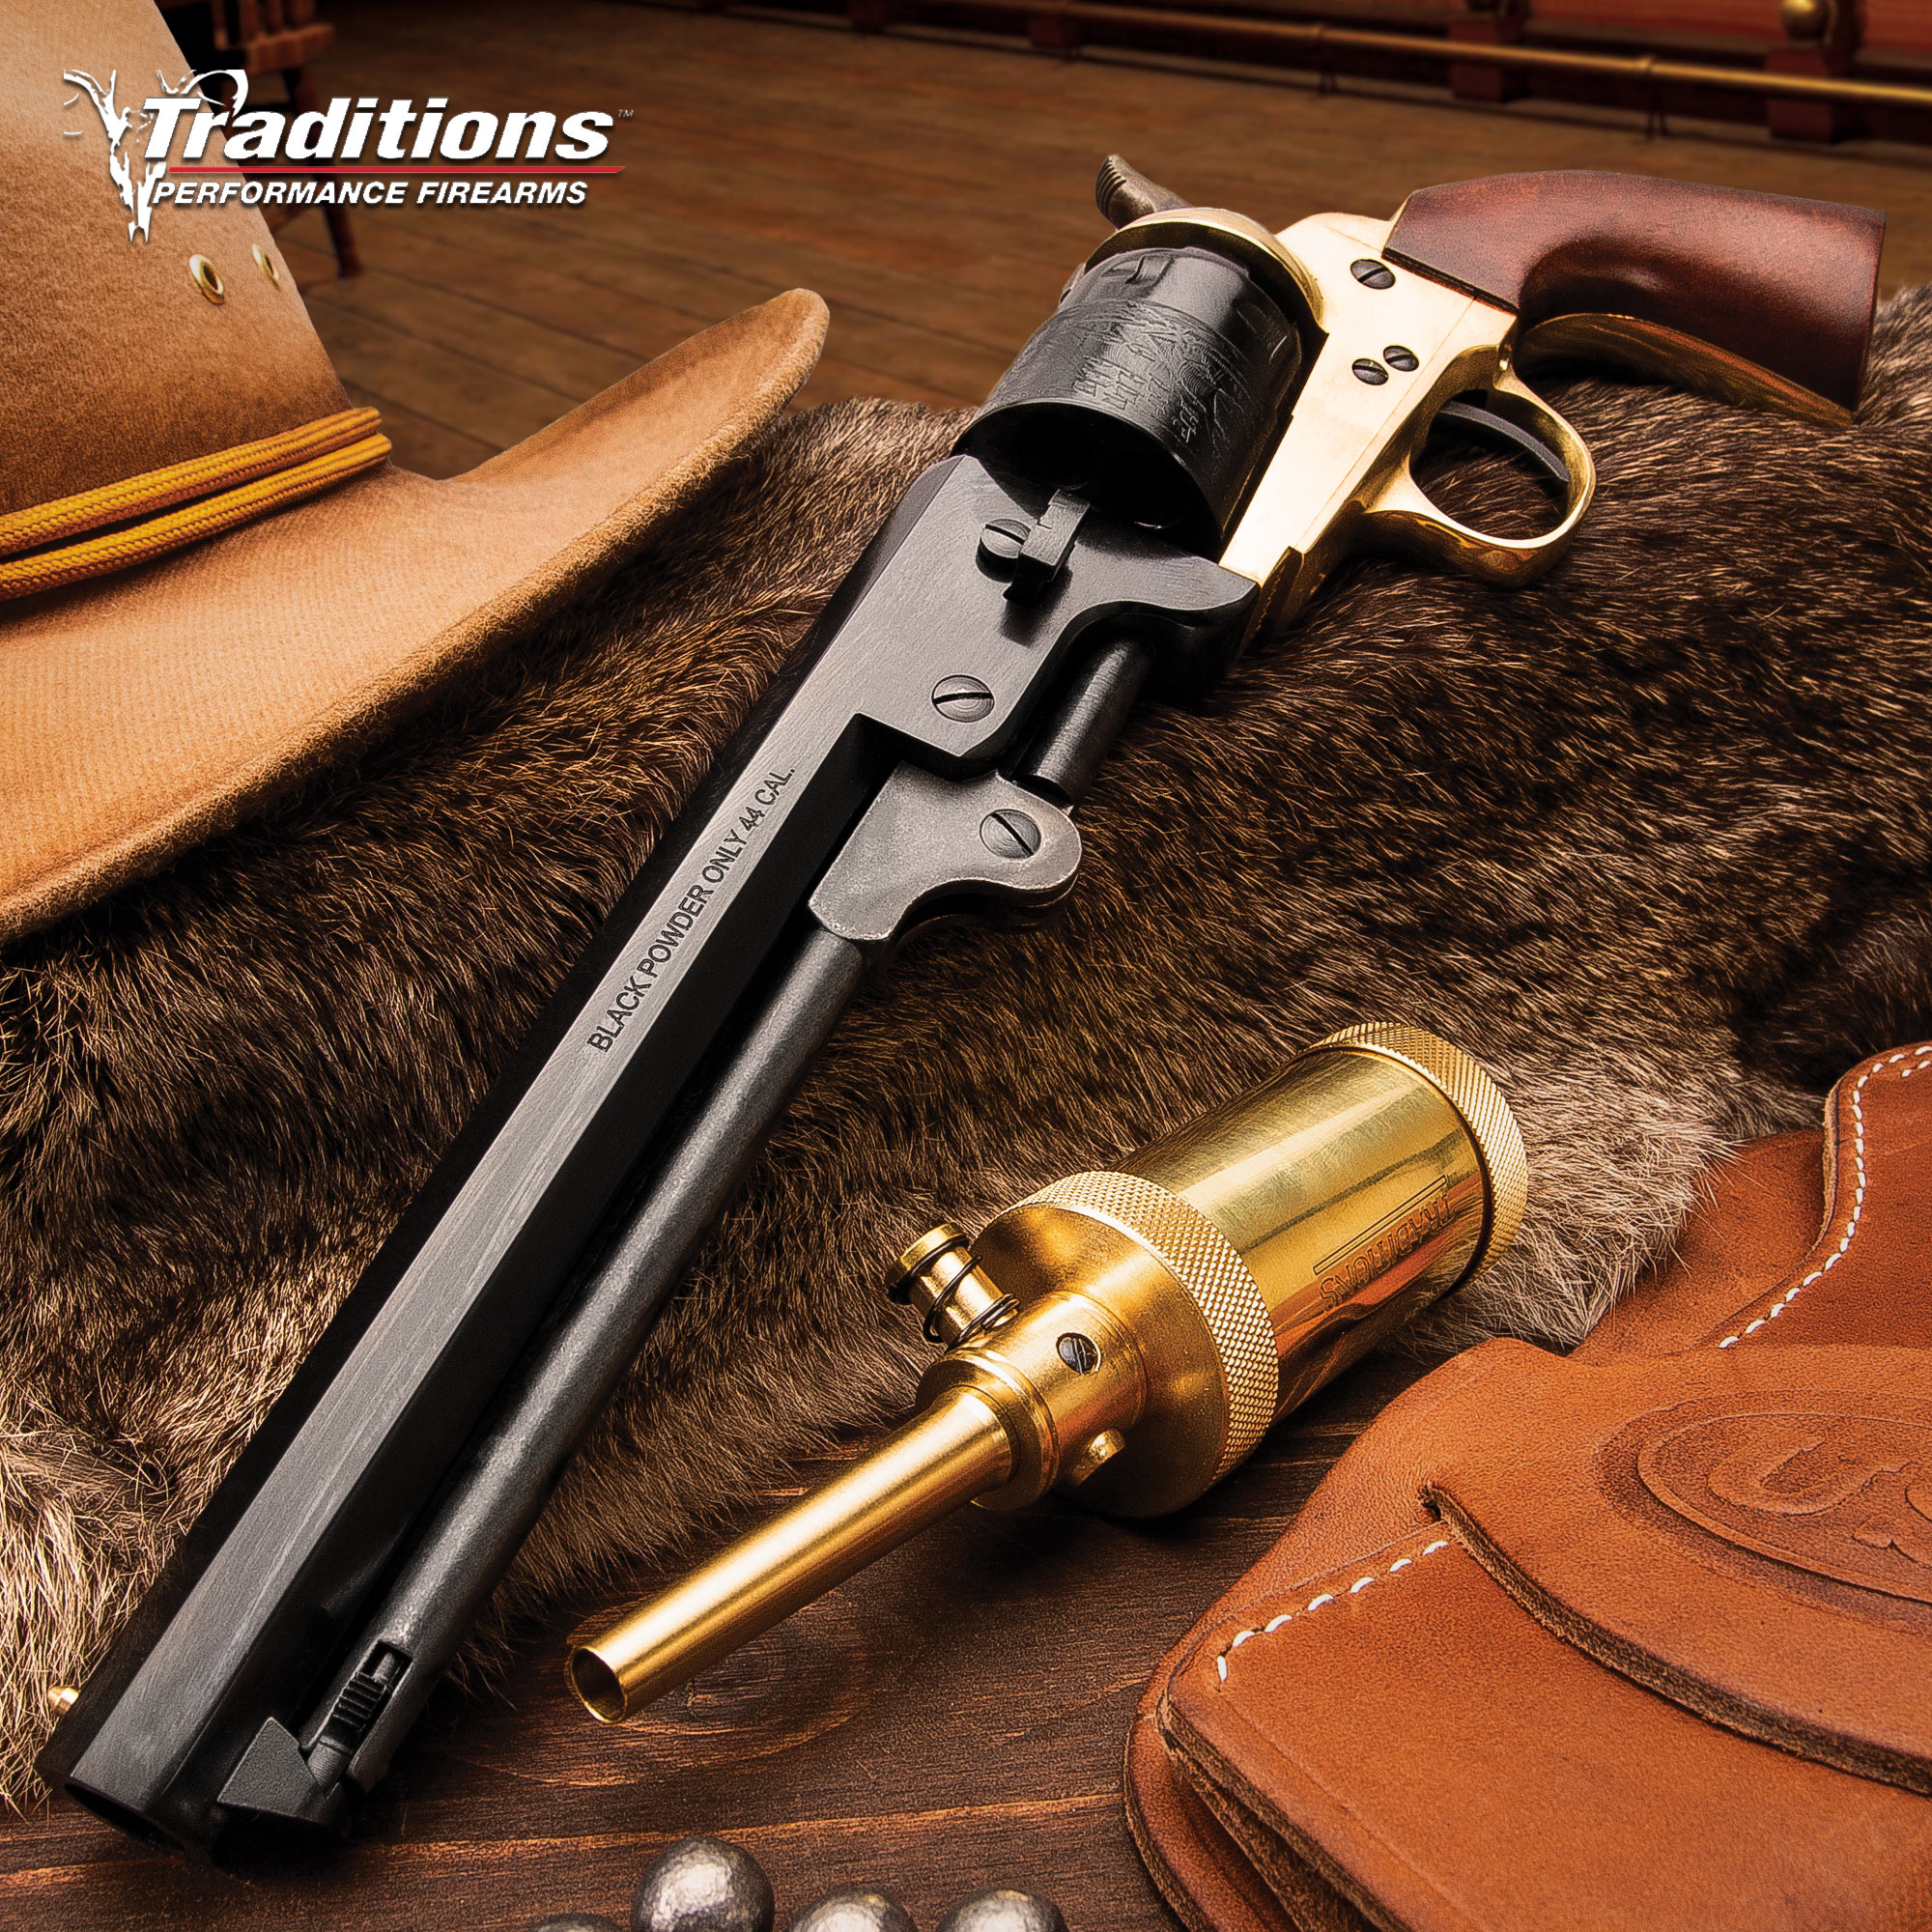 Traditions Firearms 1851 Colt Navy Black Powder  44 Revolver with